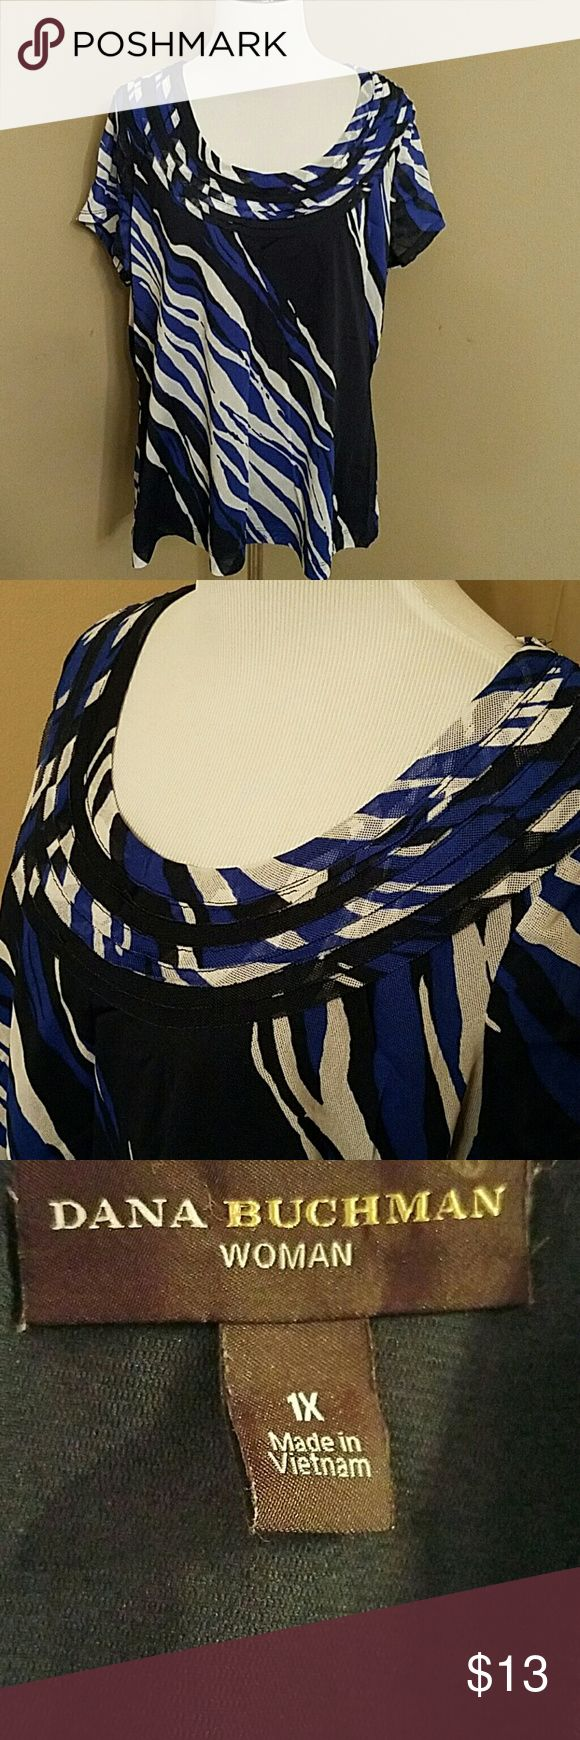 Dana Buchman top Size 1x blue black and cream short sleeve top.  Lined  with th3 exception of the sleeves.  In great condition. Dana Buchman Tops Tees - Short Sleeve